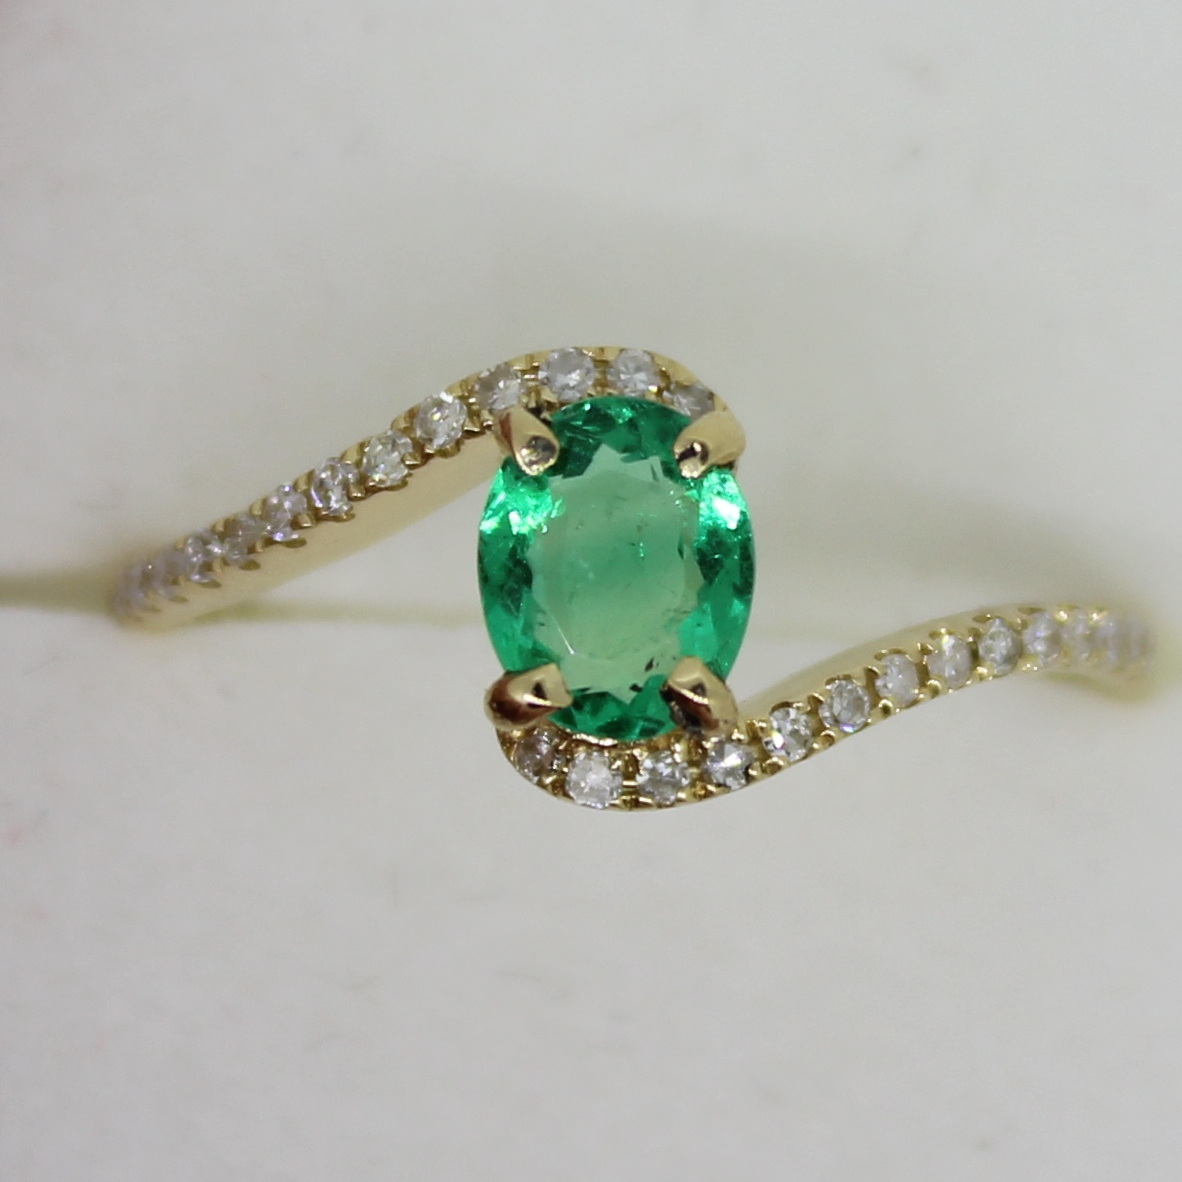 emeraldengagementring and celebrating rings tag re arpels in we ring famous s van emerald may engagement william spirit carat with cleef birthstone noble jewellery of like the